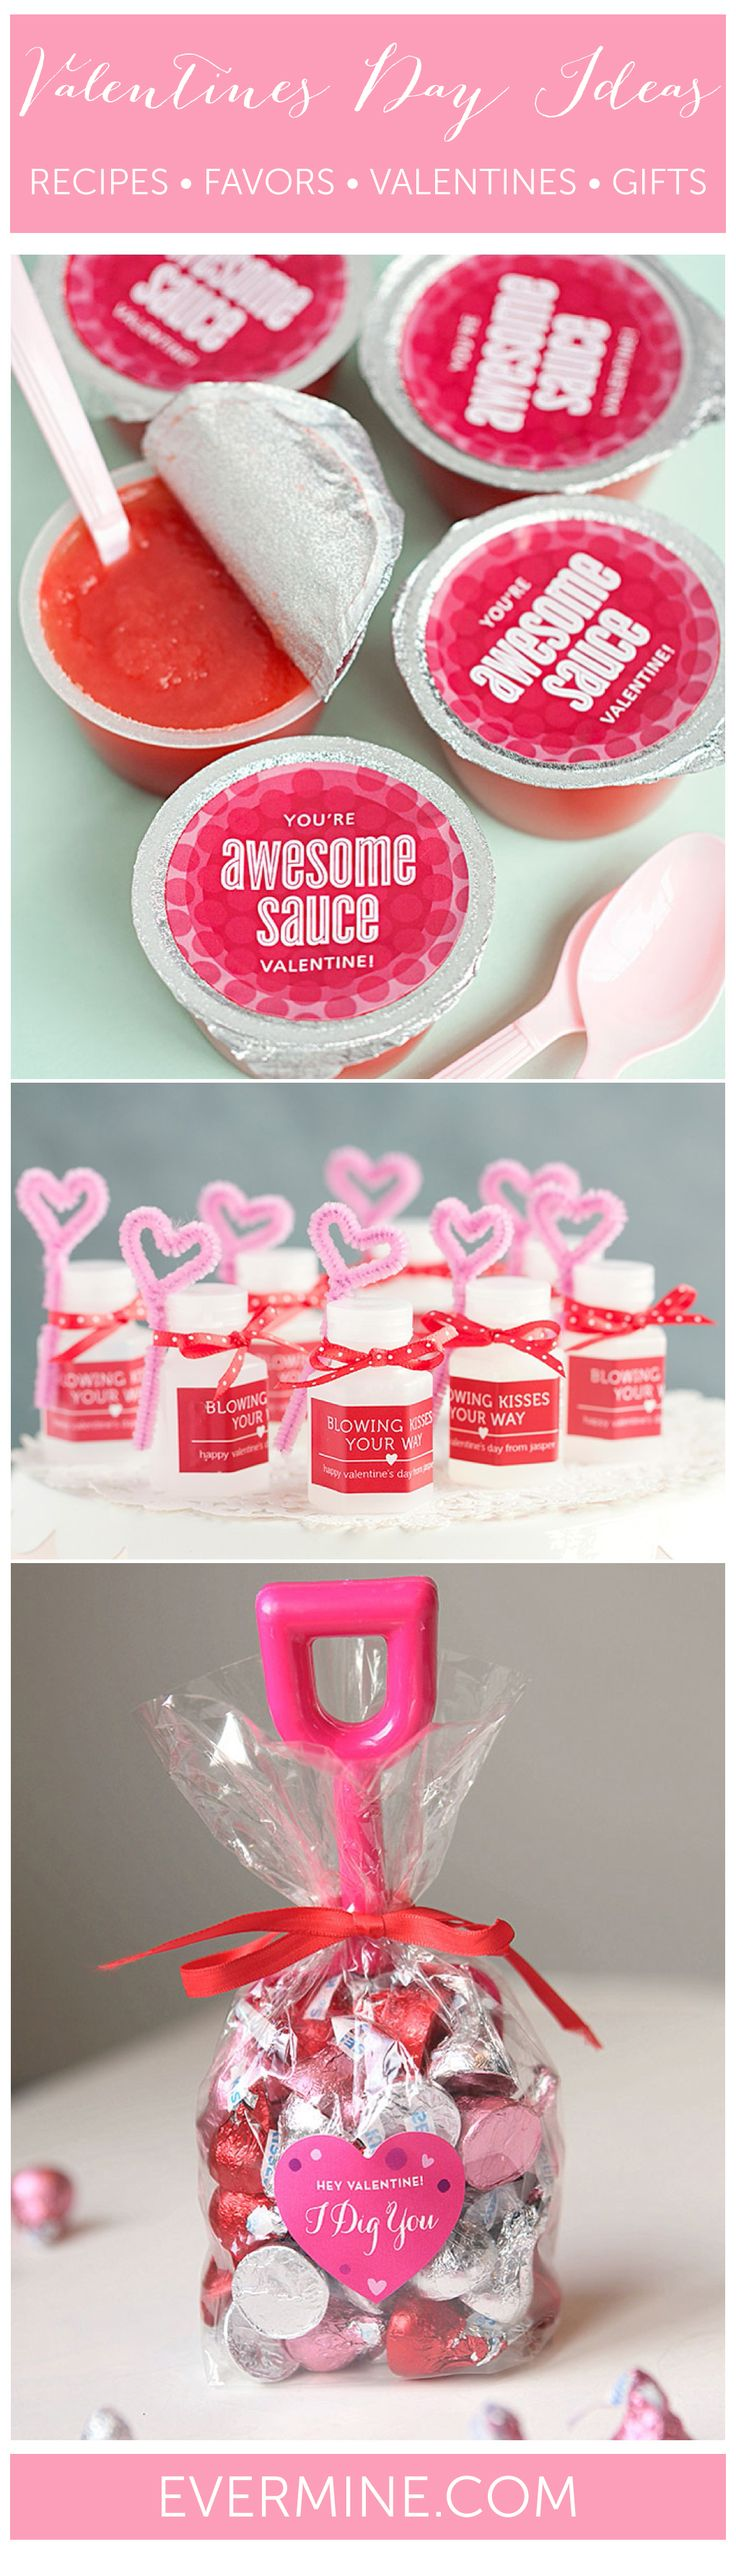 Valentines Day Ideas | Valentines Recipes, Favors, Crafts, Gifts, Kids Valentines | Evermine.com